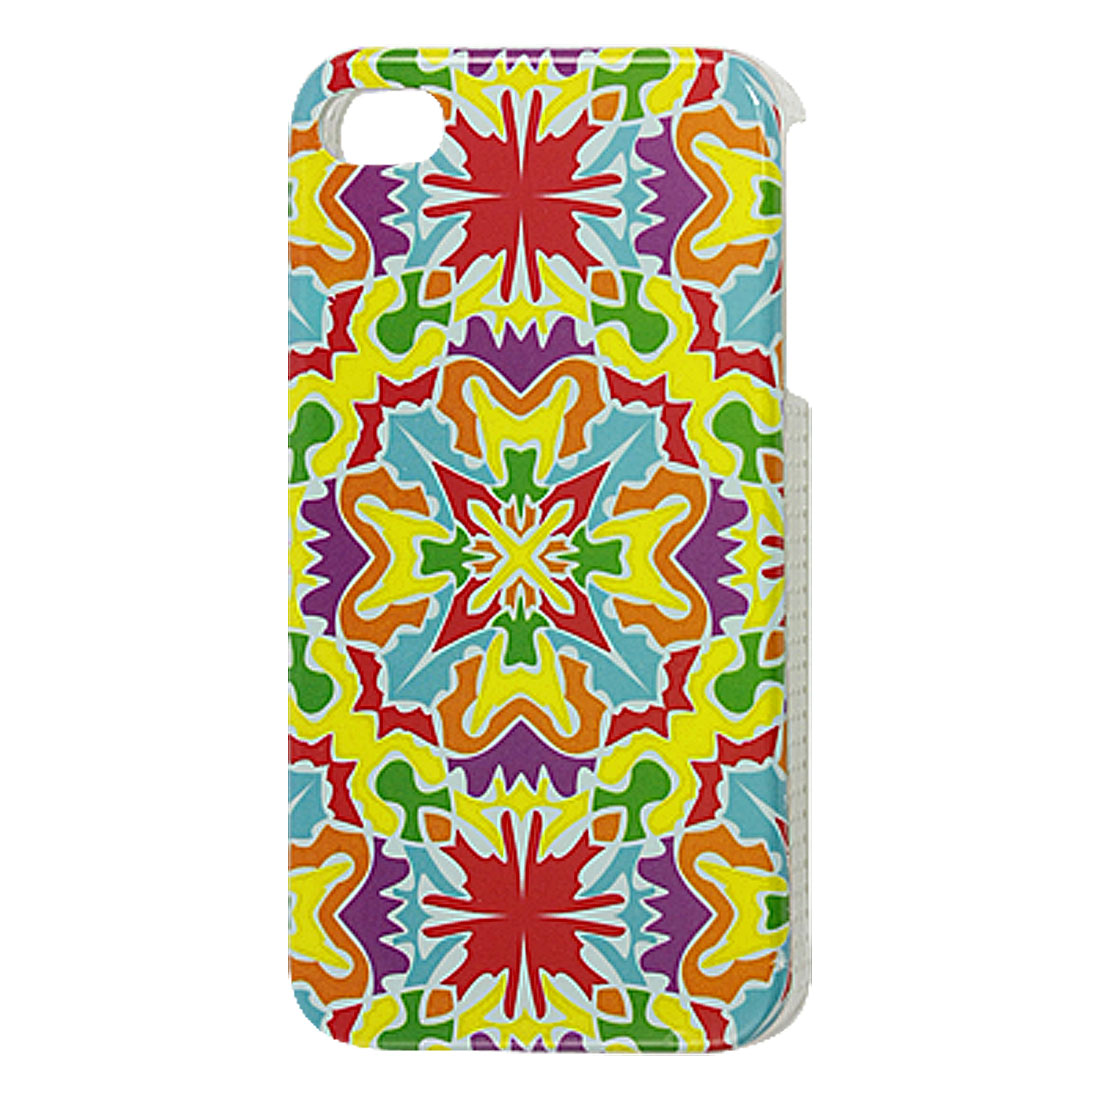 IMD Colorful Floral Pattern Plastic Back Cover Case for iPhone 4 4G 4S